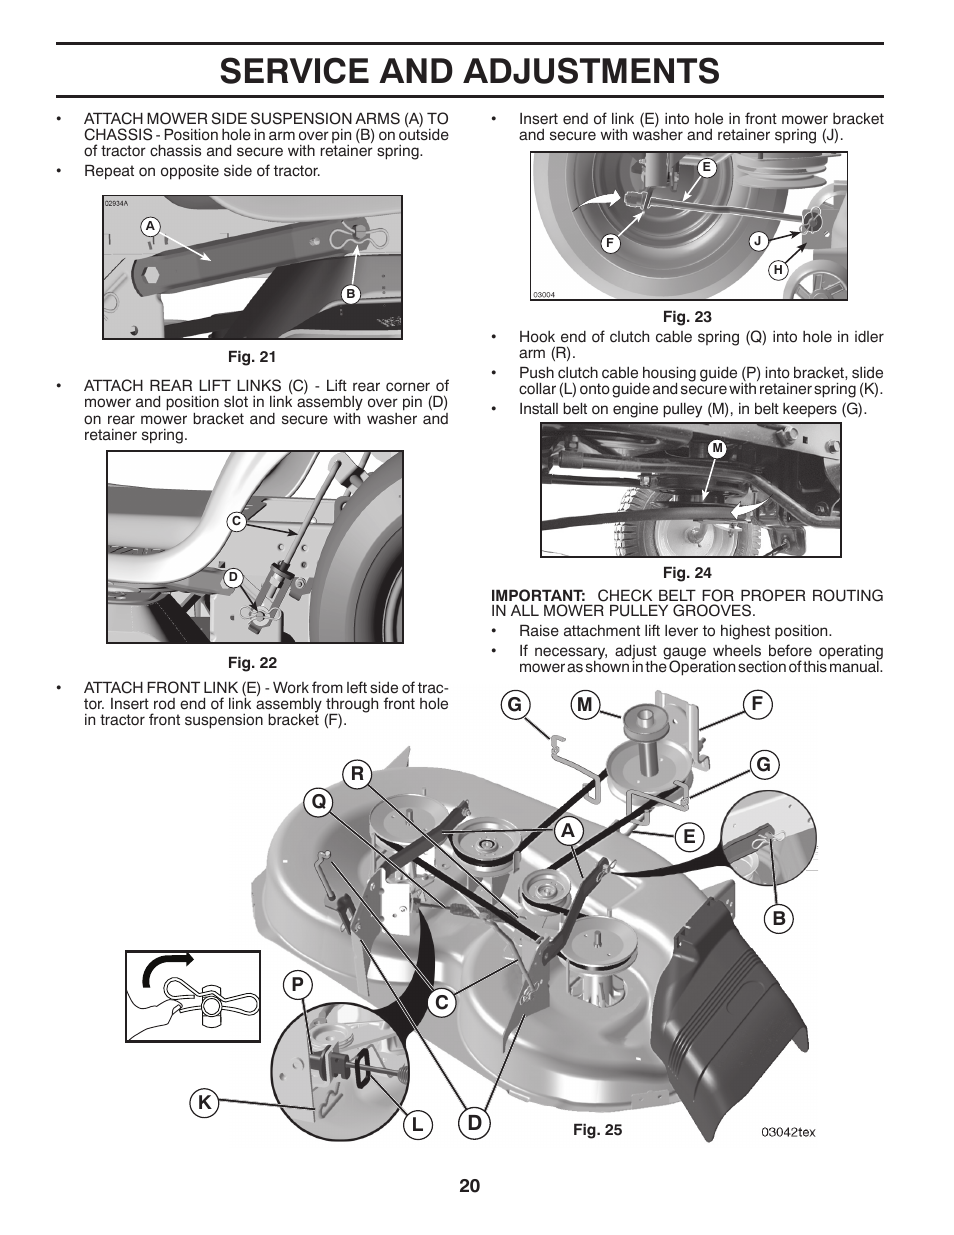 Service and adjustments | Poulan Pro PB175G42 LAWN TRACTOR User Manual |  Page 20 / 60